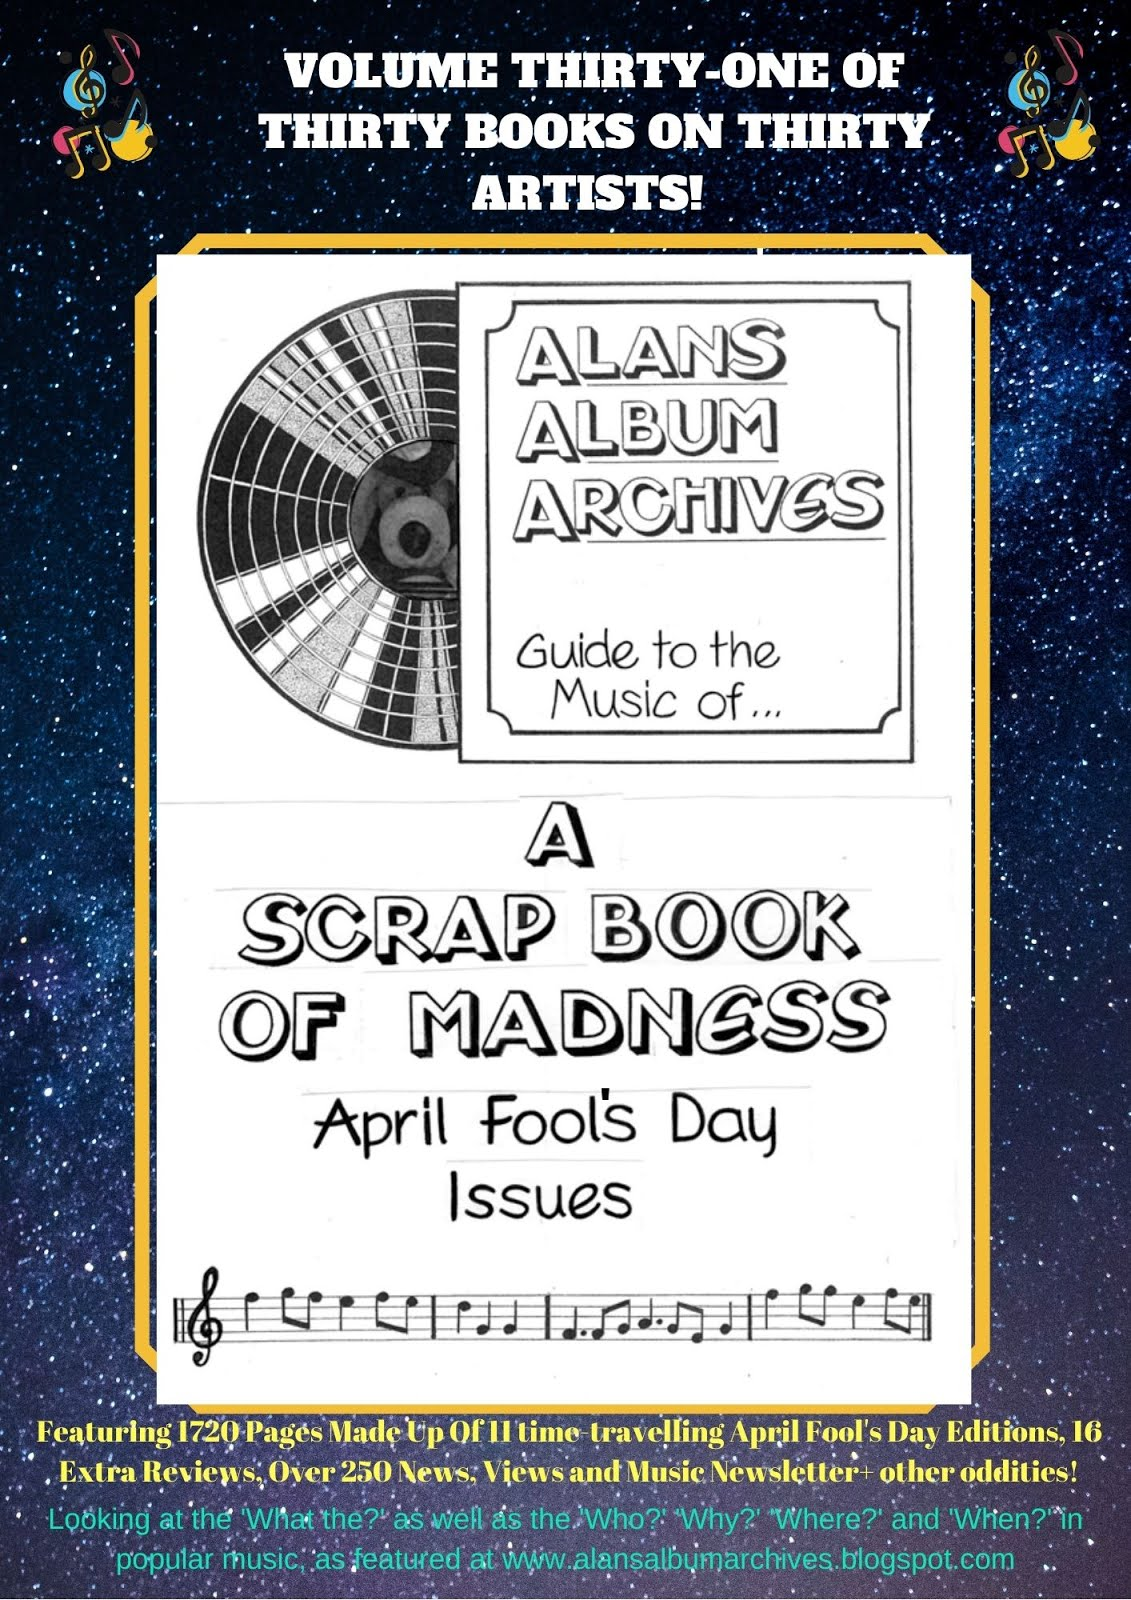 'A Scrapbook Of Madness - The Alan's Album Archives Guide To...Alan's Album Archives'